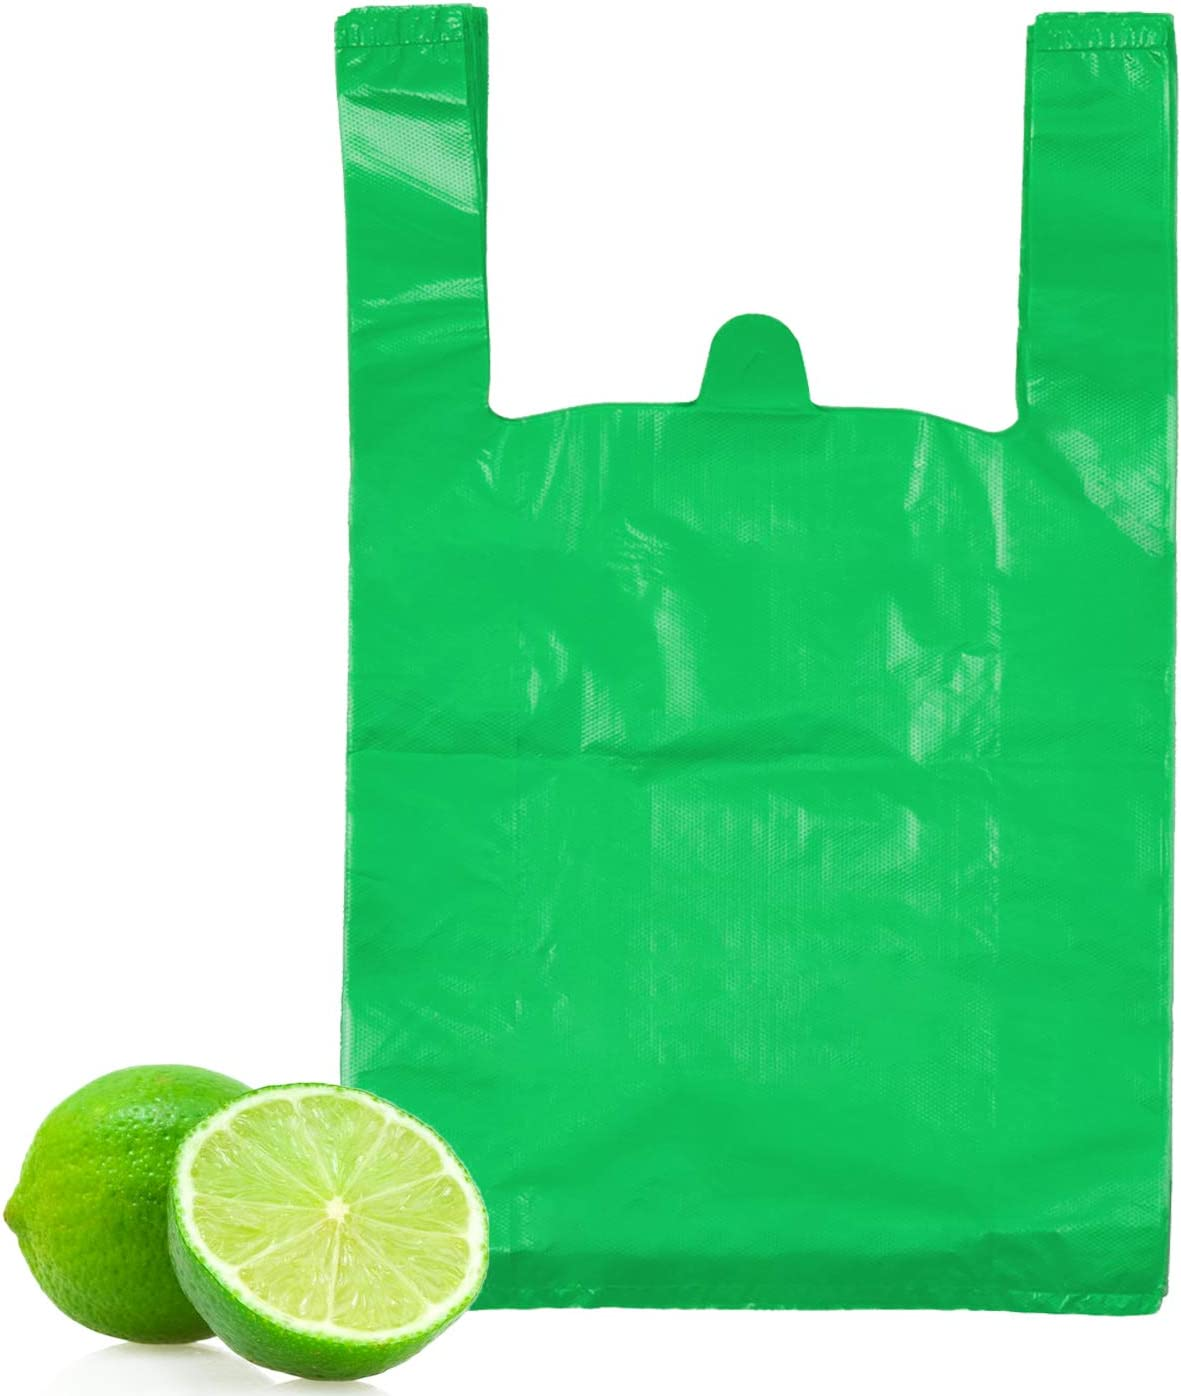 T-Shirt Bags, LazyMe Bolsas De Plastico Para Negocio, Plastic Grocery Bags with Handles Shopping Bags in Bulk Restaurant Bags, Standard Supermarket Size,12 x 20 inches (50 Pcs, Green)